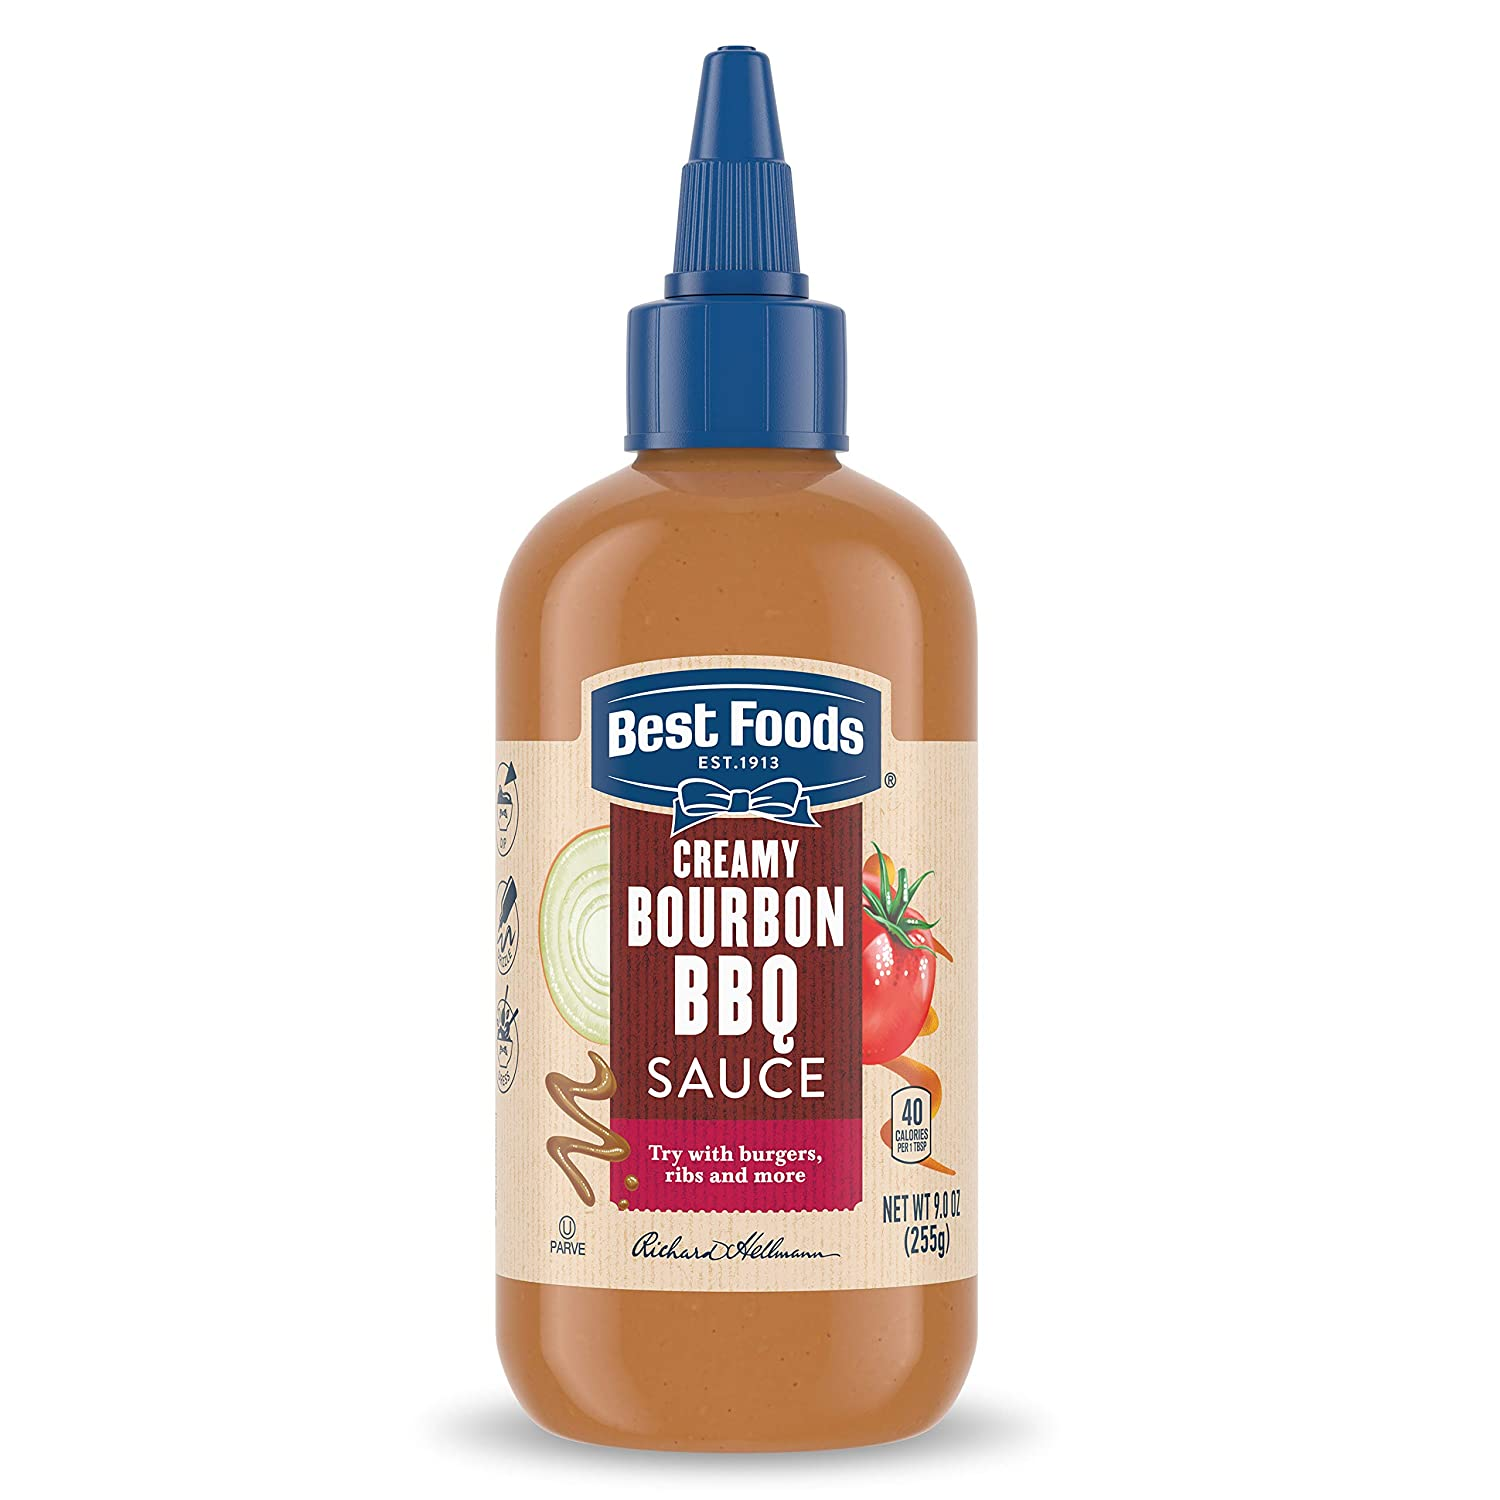 Best Foods Sauce For A Delicious Condiment, Dip and Dressing Creamy Bourbon BBQ Dairy Free, No Artificial Flavors, No High-Fructose Corn Syrup 9 oz (10048001011967)